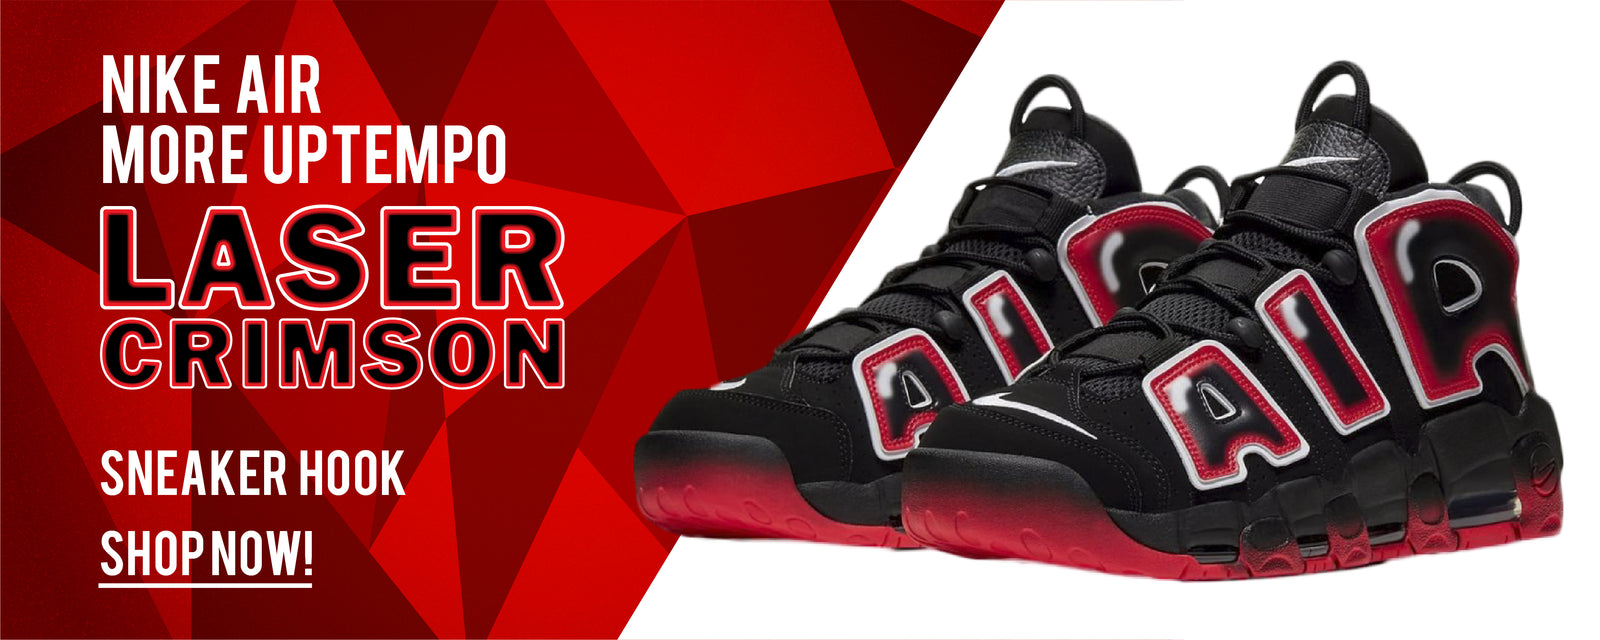 Nike Air More Uptempo Laser Crimson Sneaker Hook Up Clothing